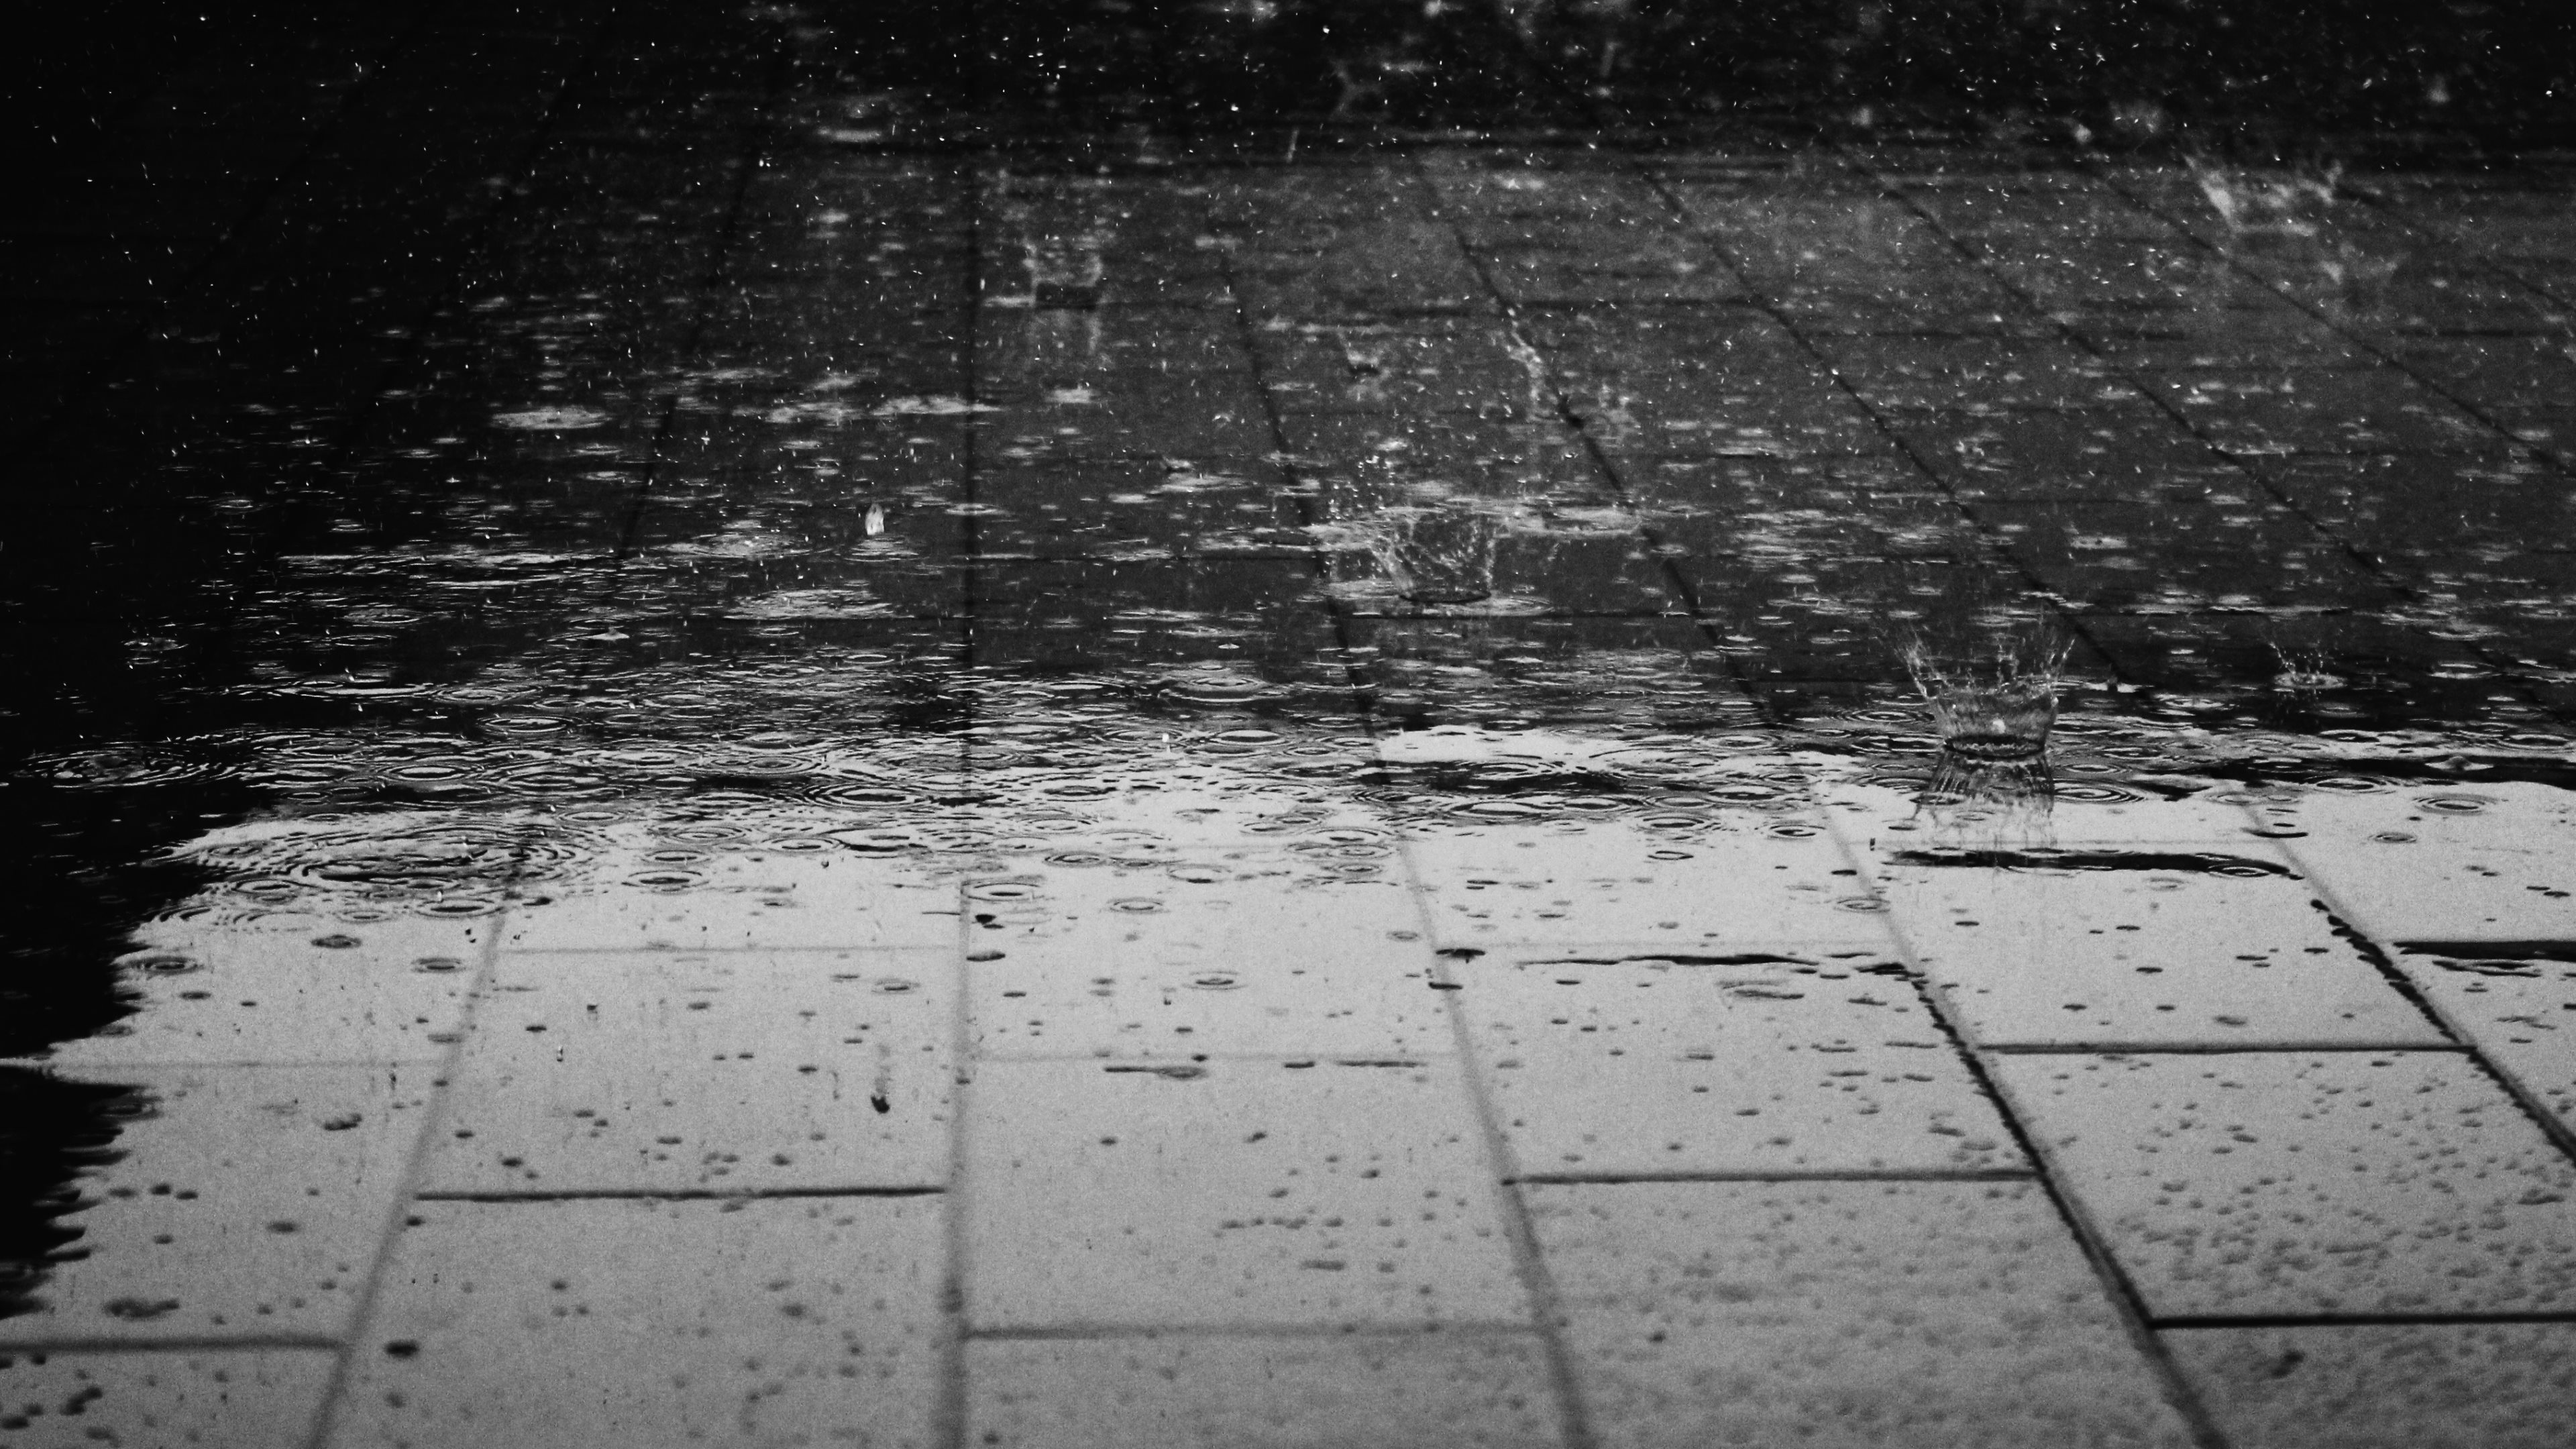 Rainy day, drops, drops on the floor, water, wet, white and black